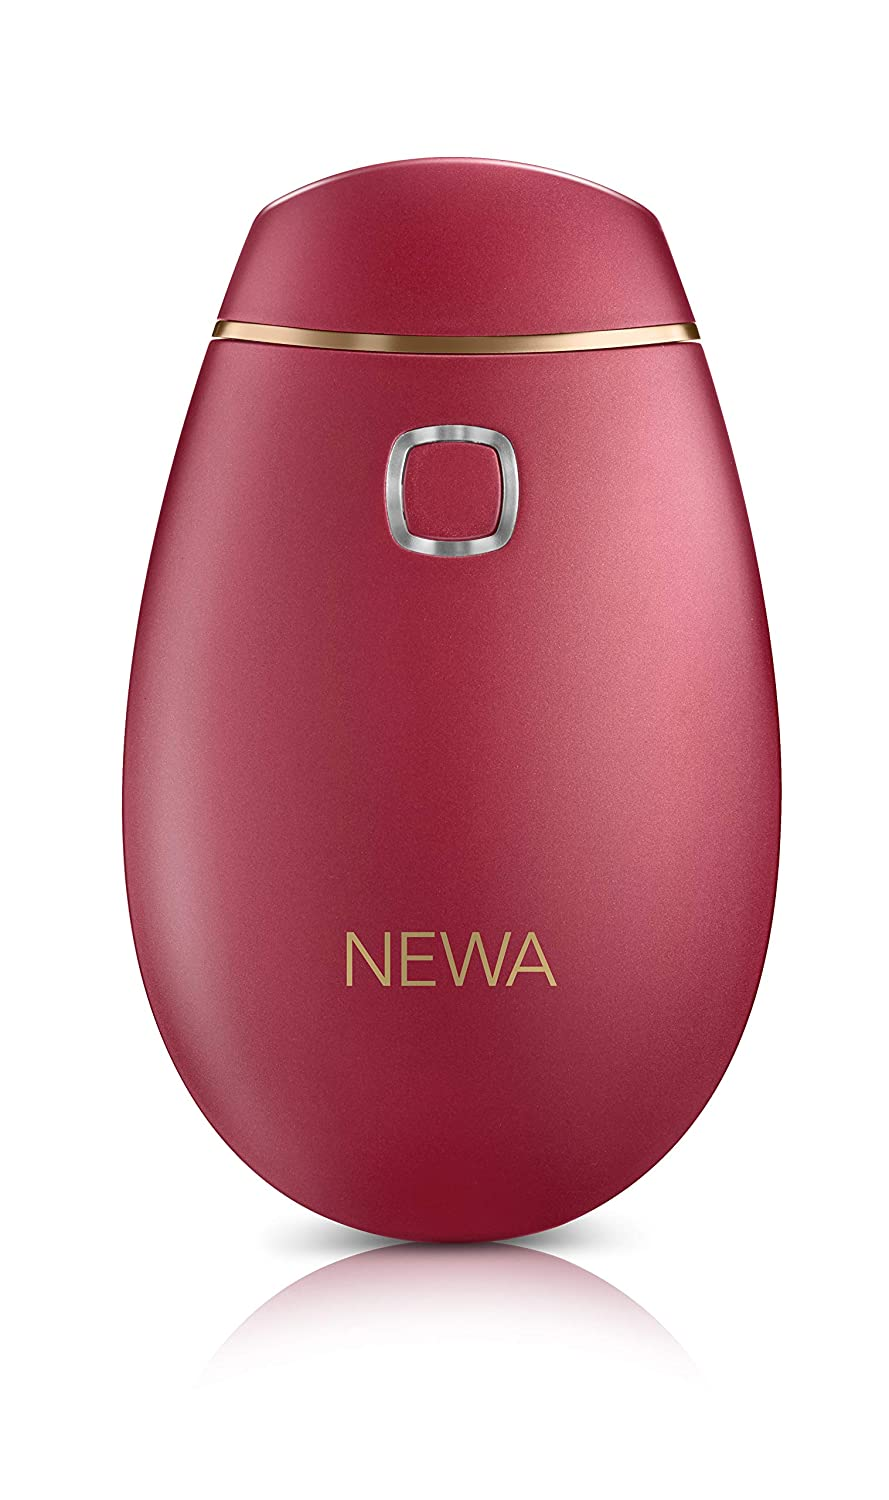 NEWA Skin Care System Anti-Aging Facial Treatment Skin Tightening Technology For Home Use